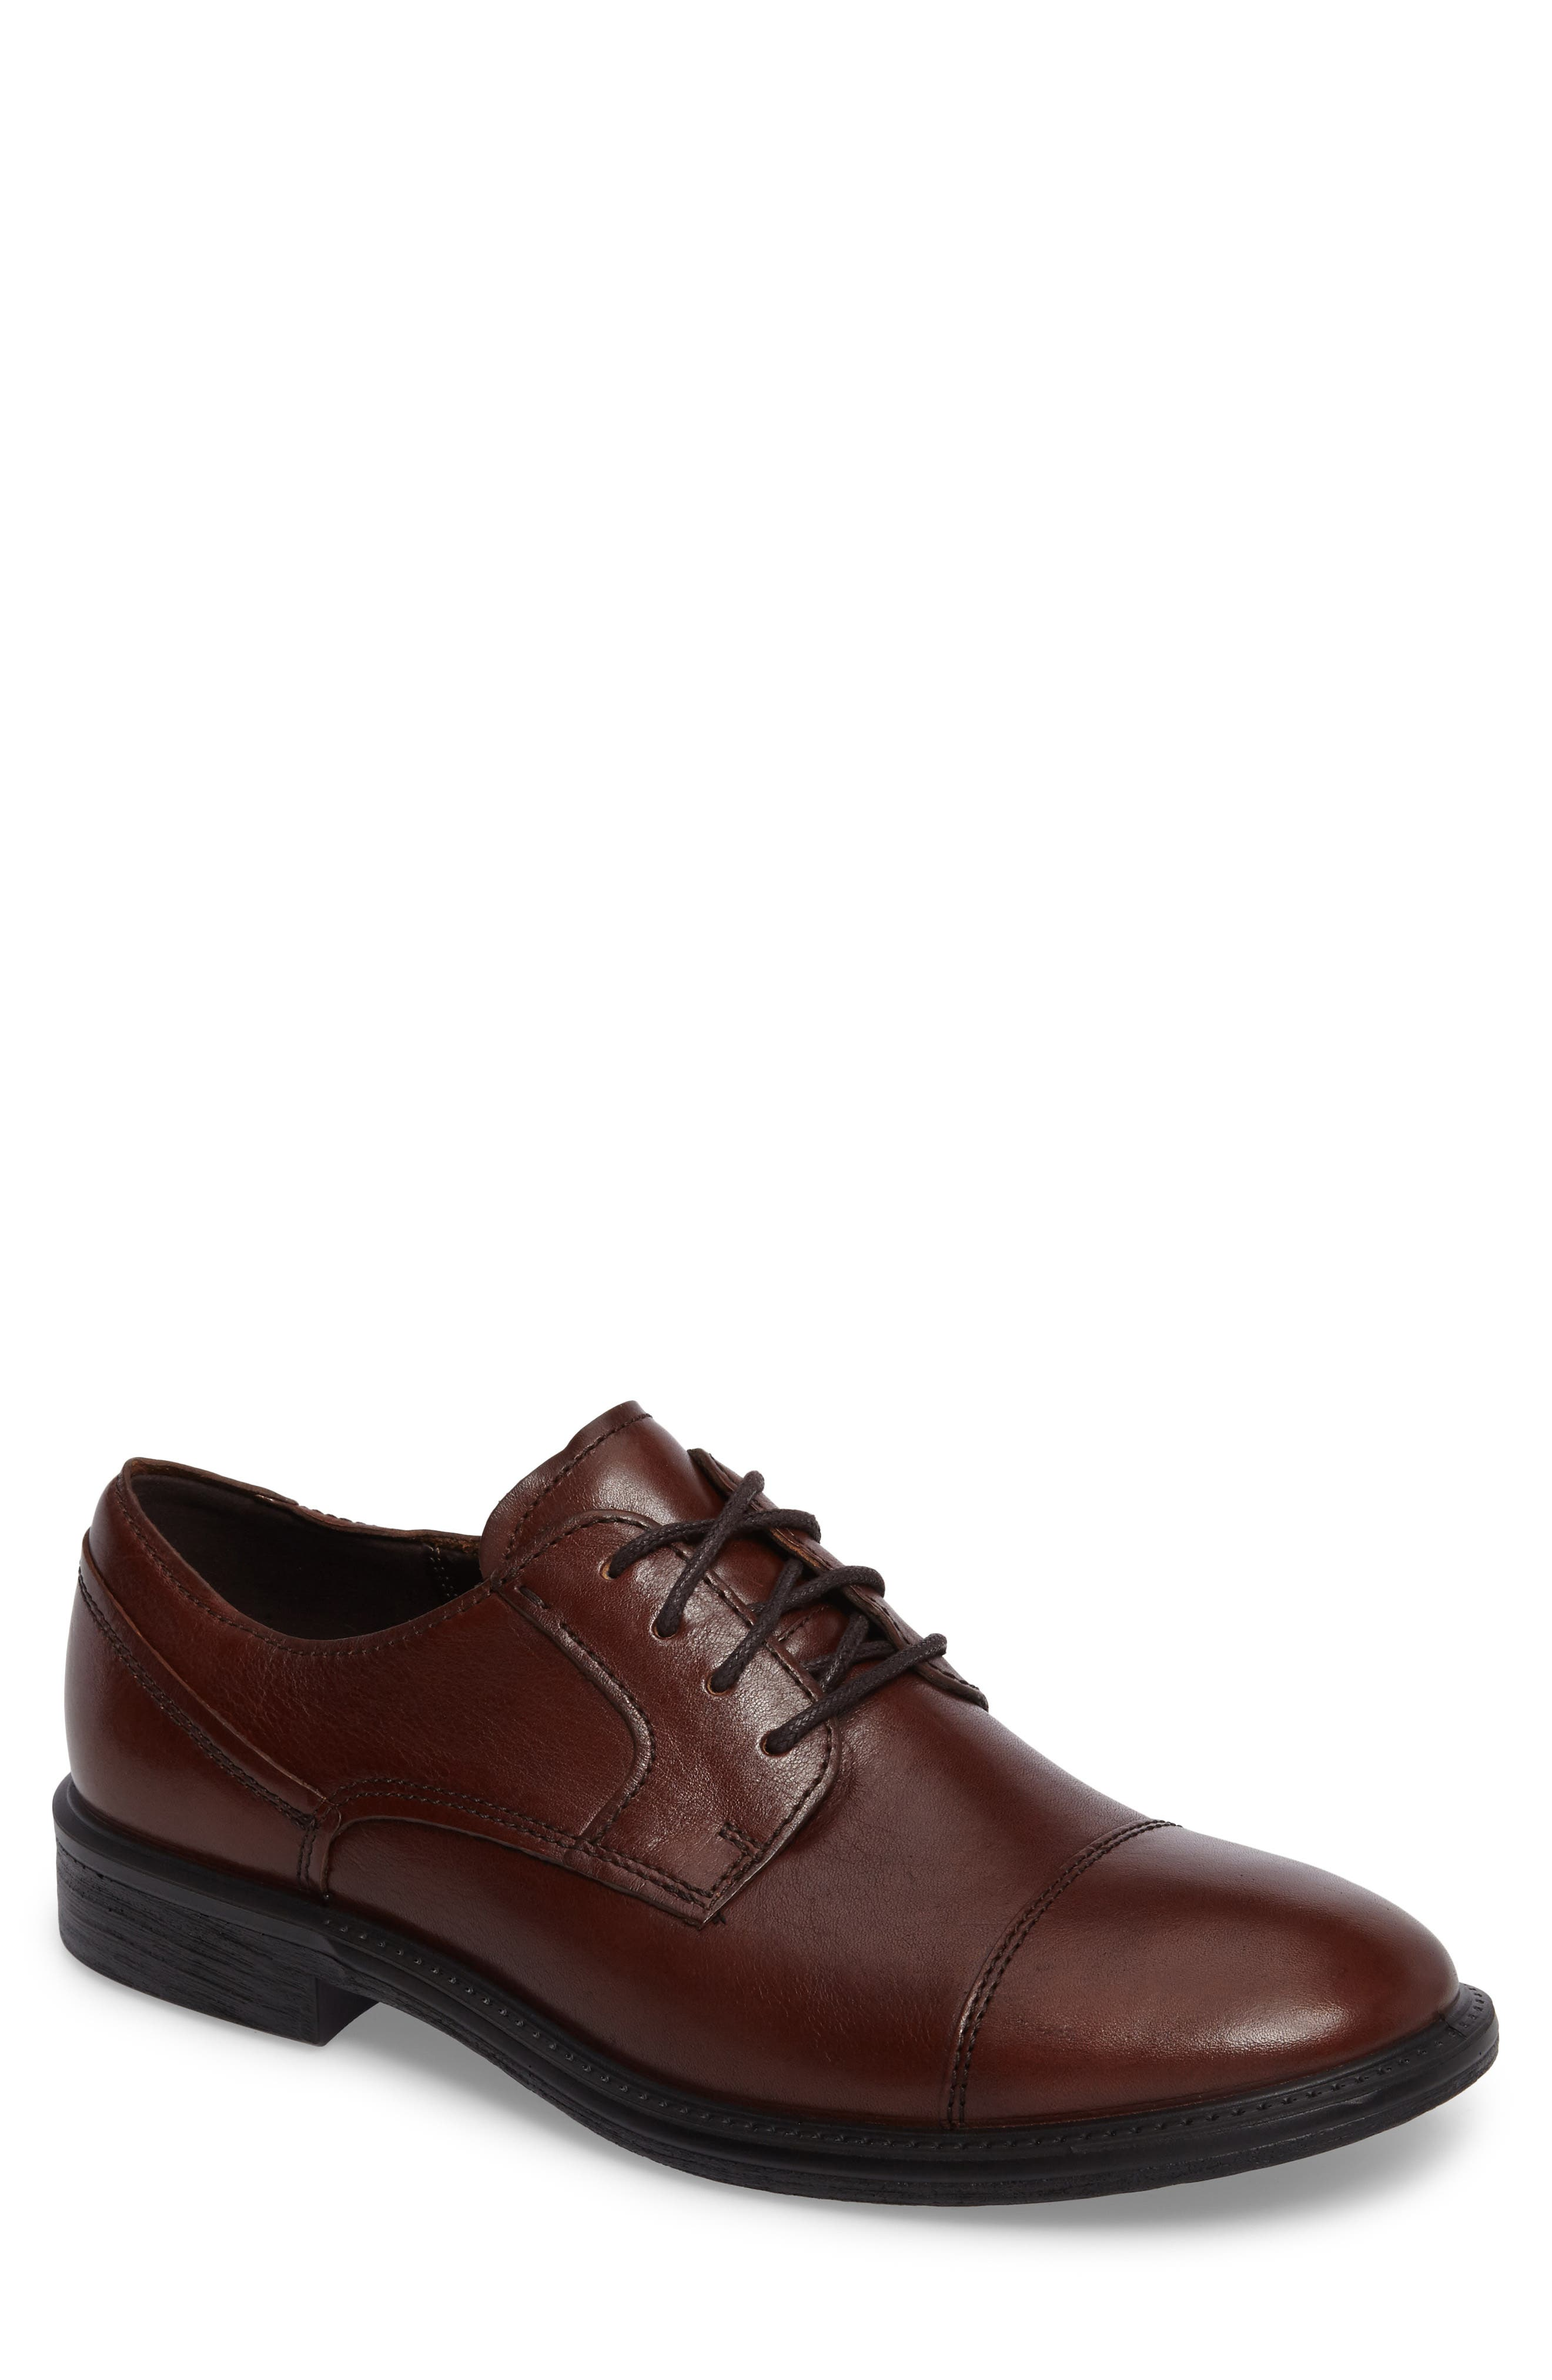 Alternate Image 1 Selected - ECCO Knoxville Cap Toe Derby (Men)